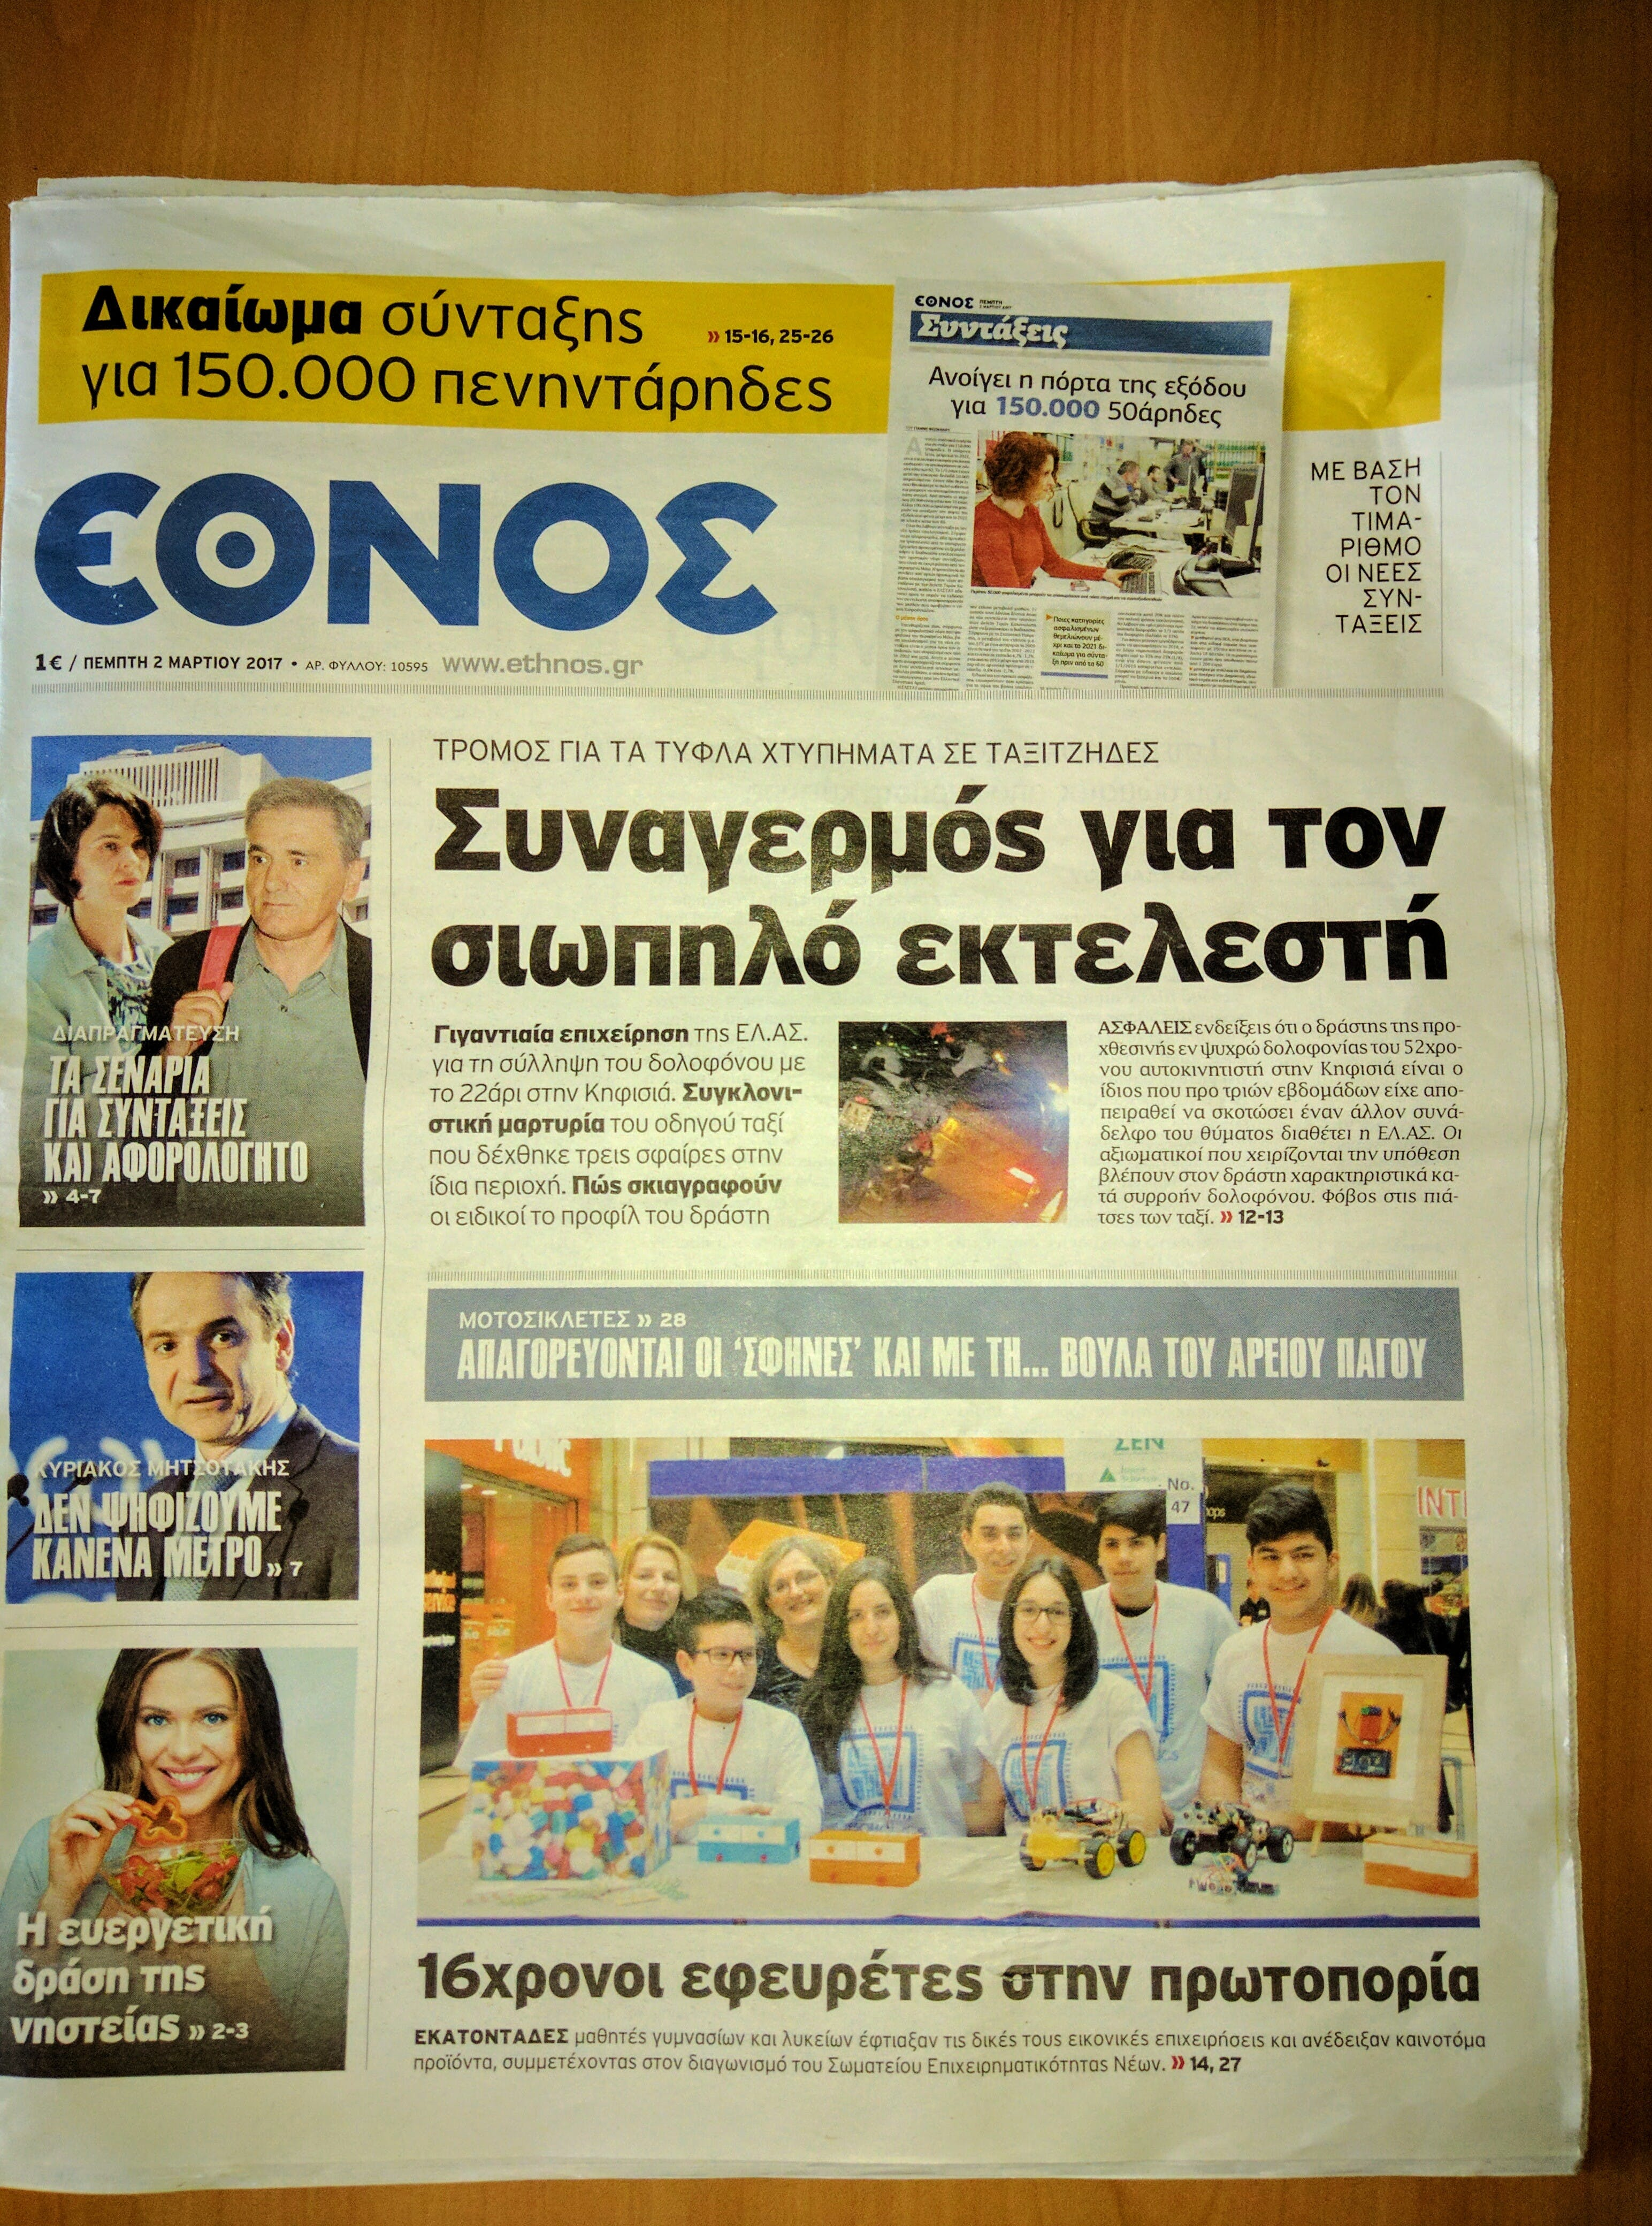 Makers and their Arduino based creations make the front page